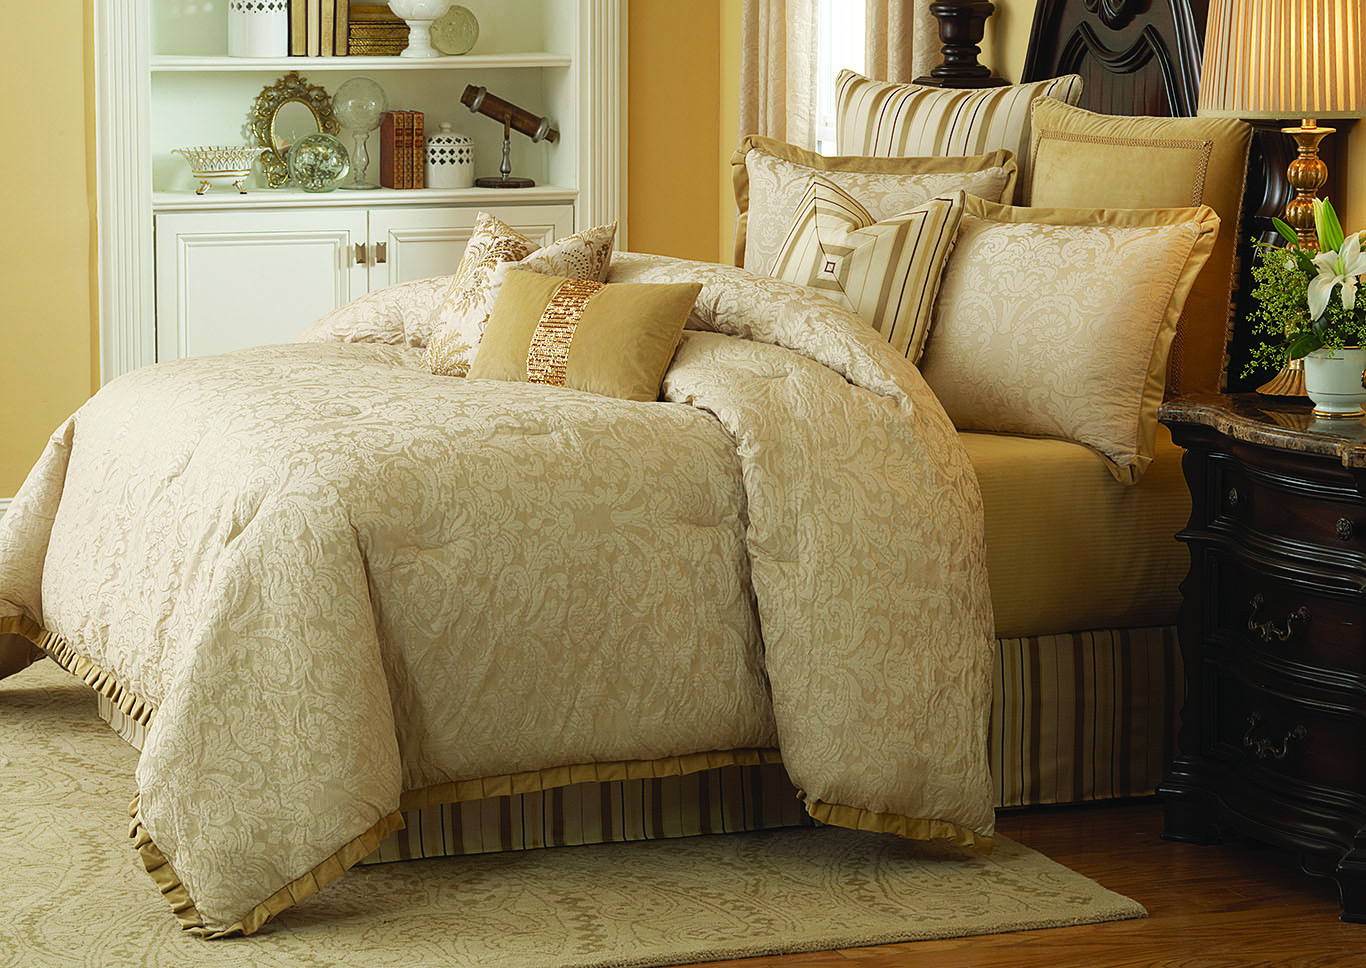 Carlton Gold 9 pc. Queen Comforter Set,AICO